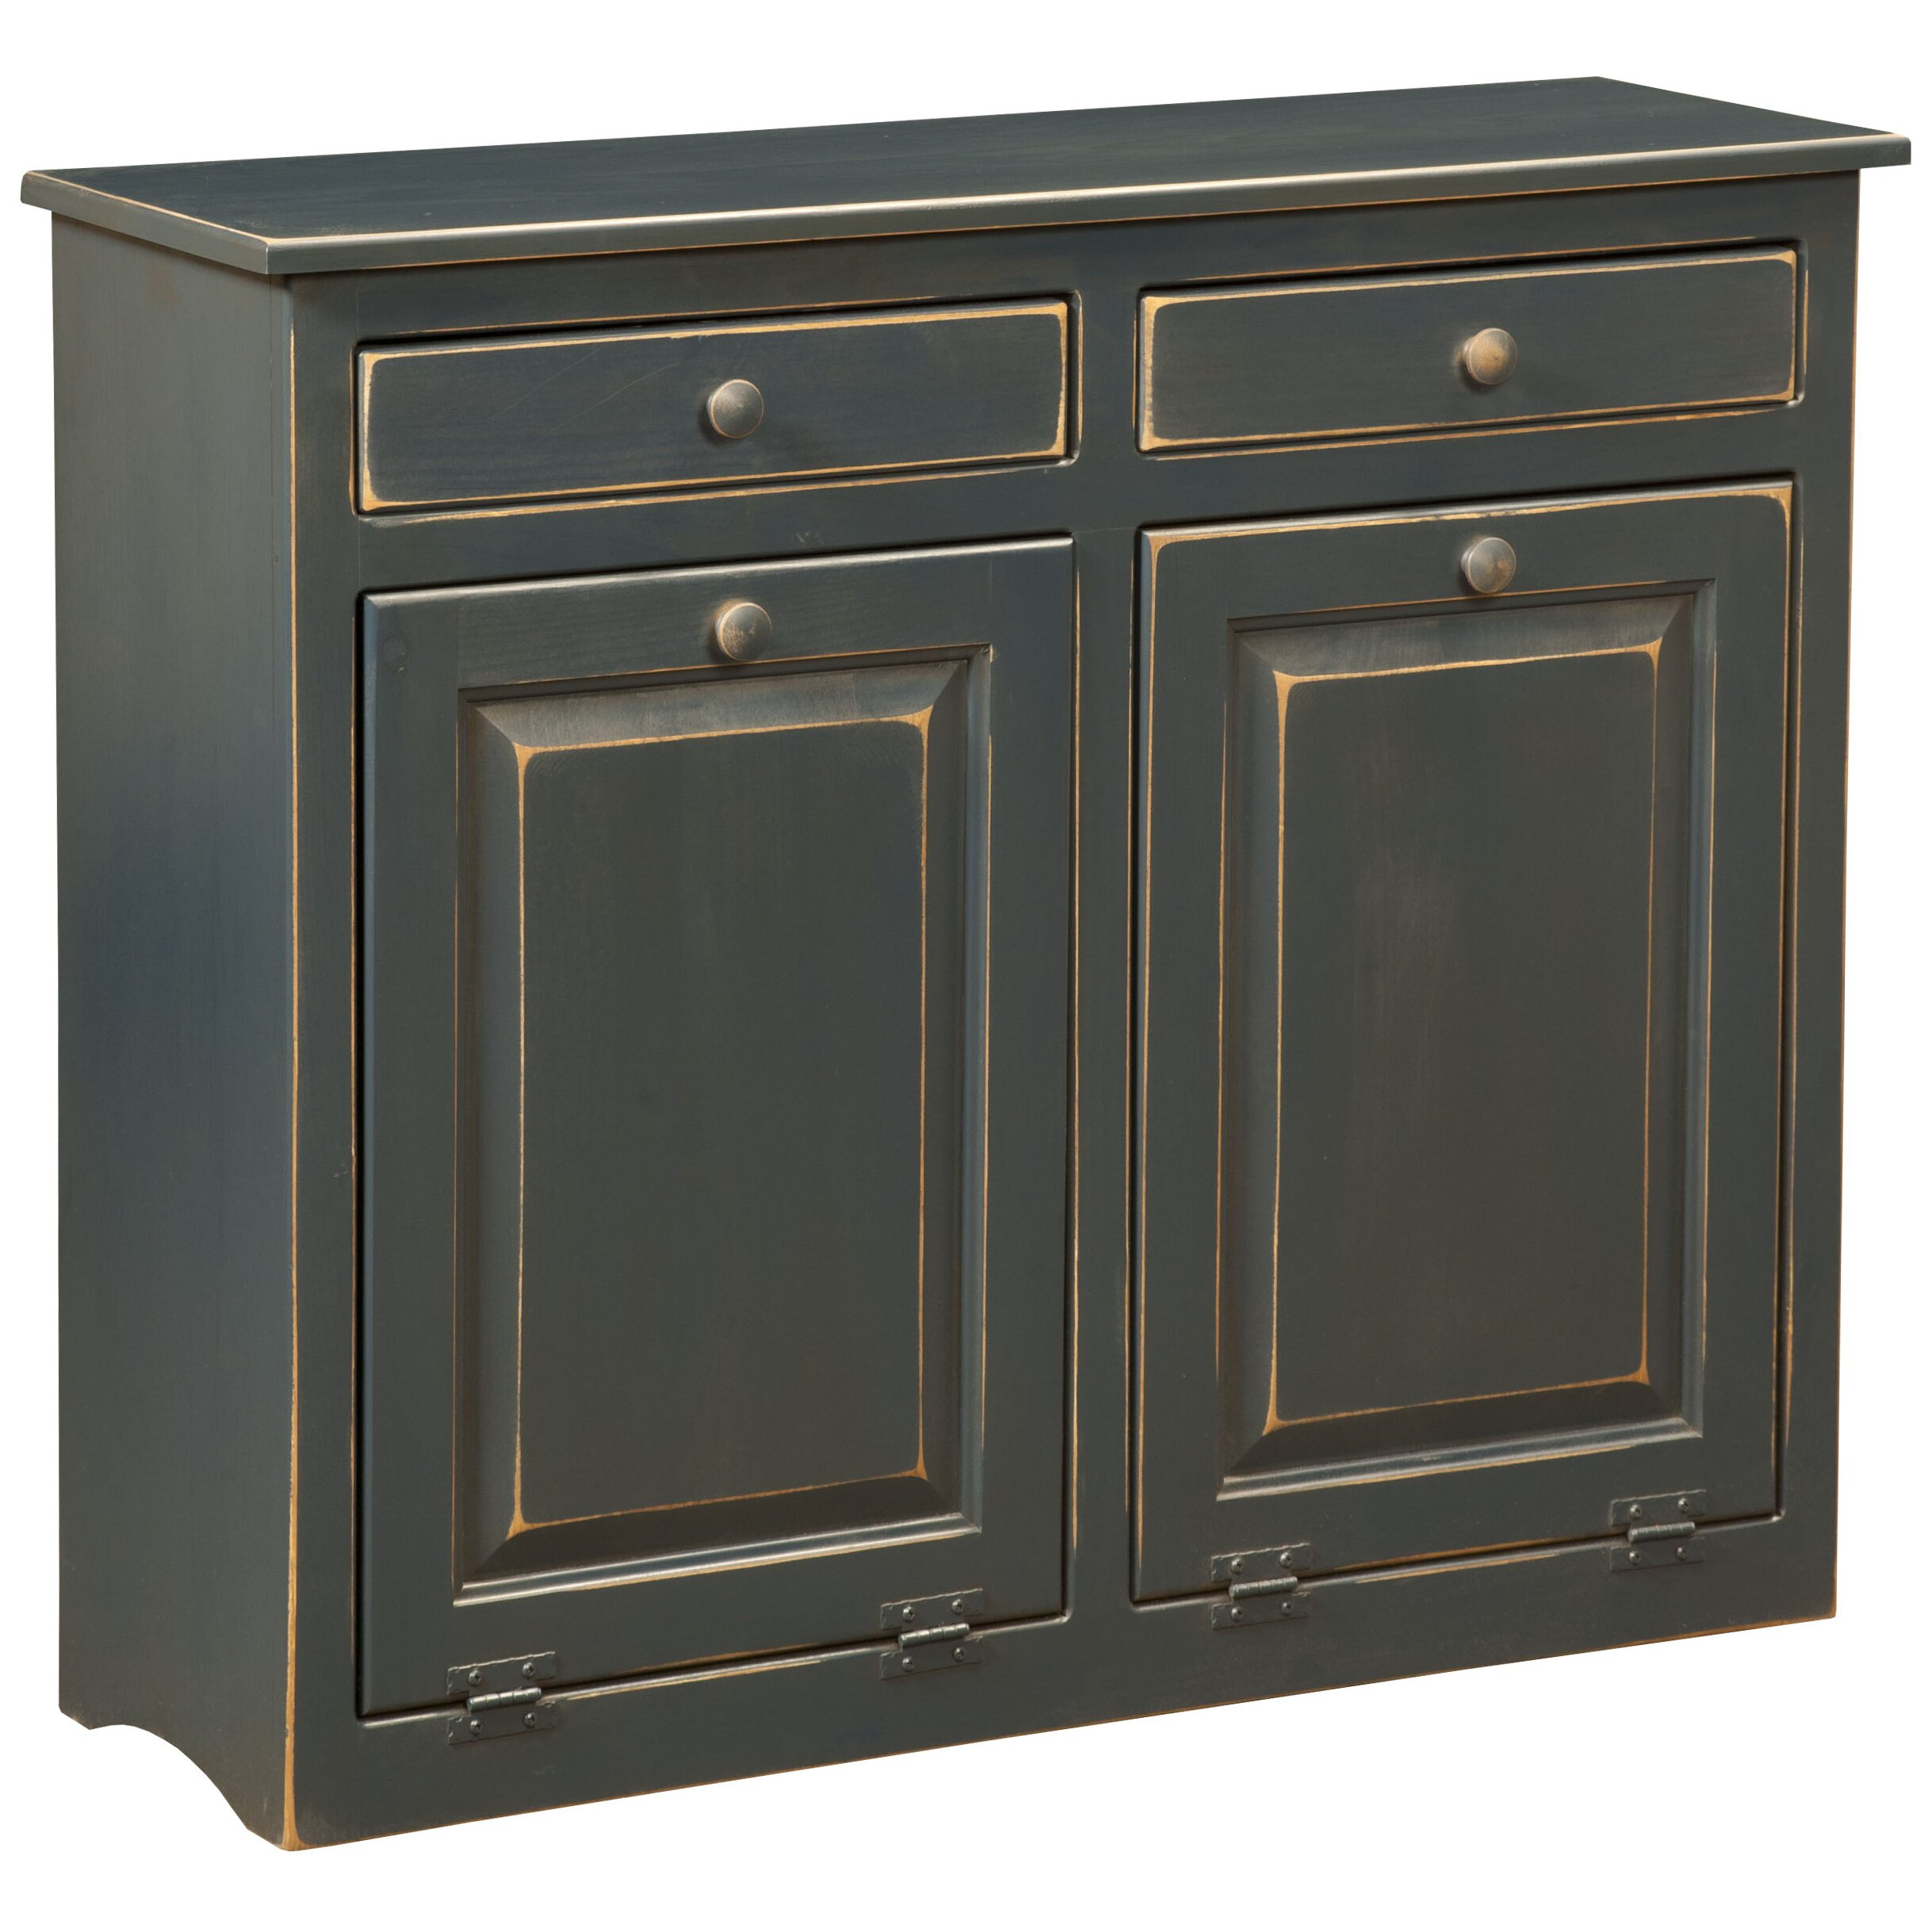 Dcor design double cabinet with trash bin wayfair for Double kitchen cabinets